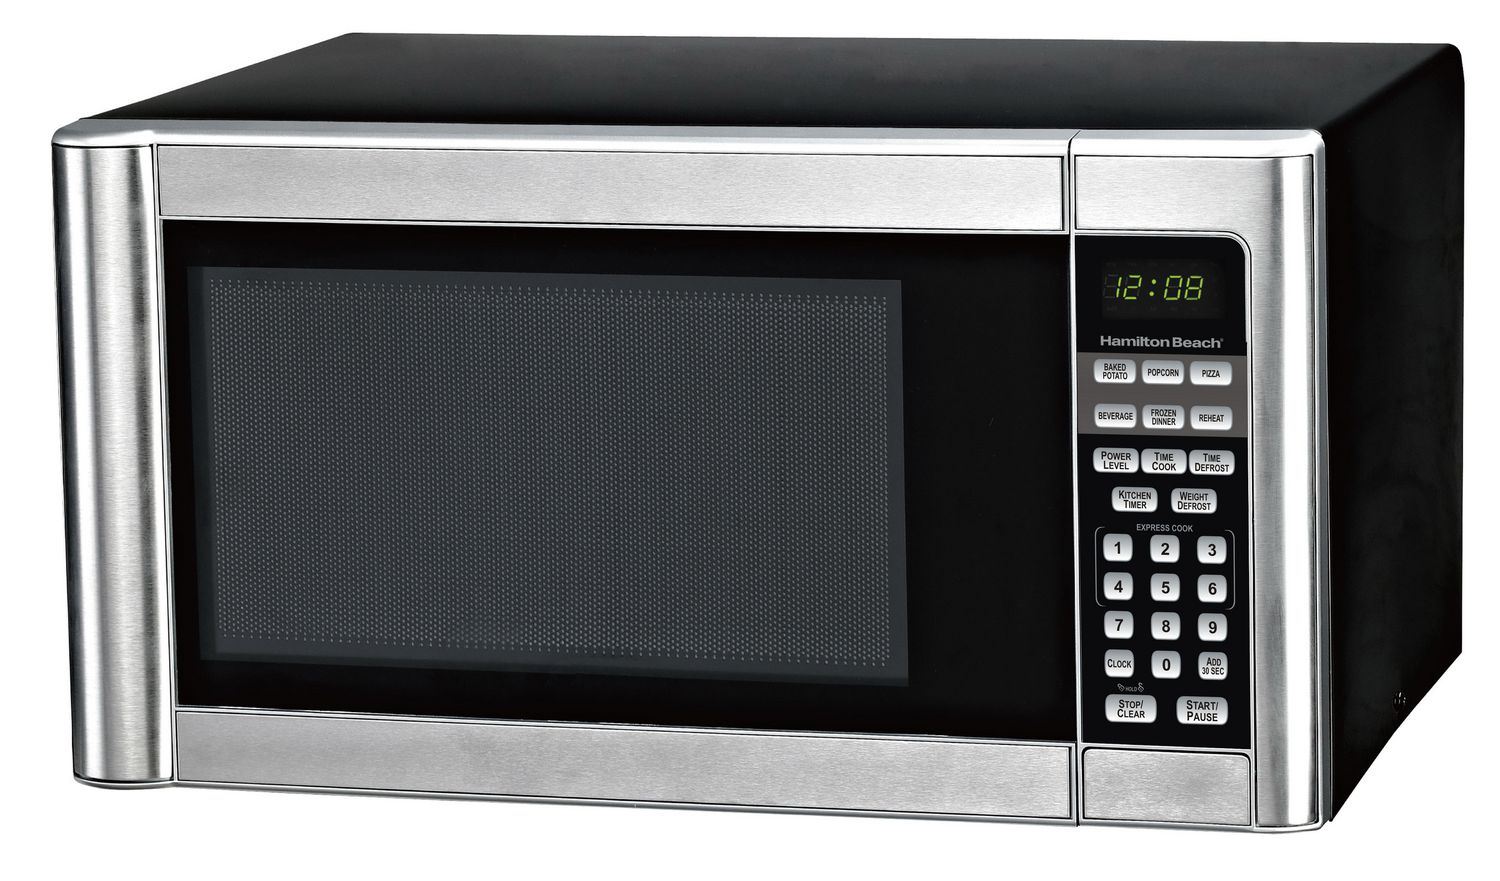 Microwave Ovens On Sale Westpoint Microwave Oven Wf Sharp